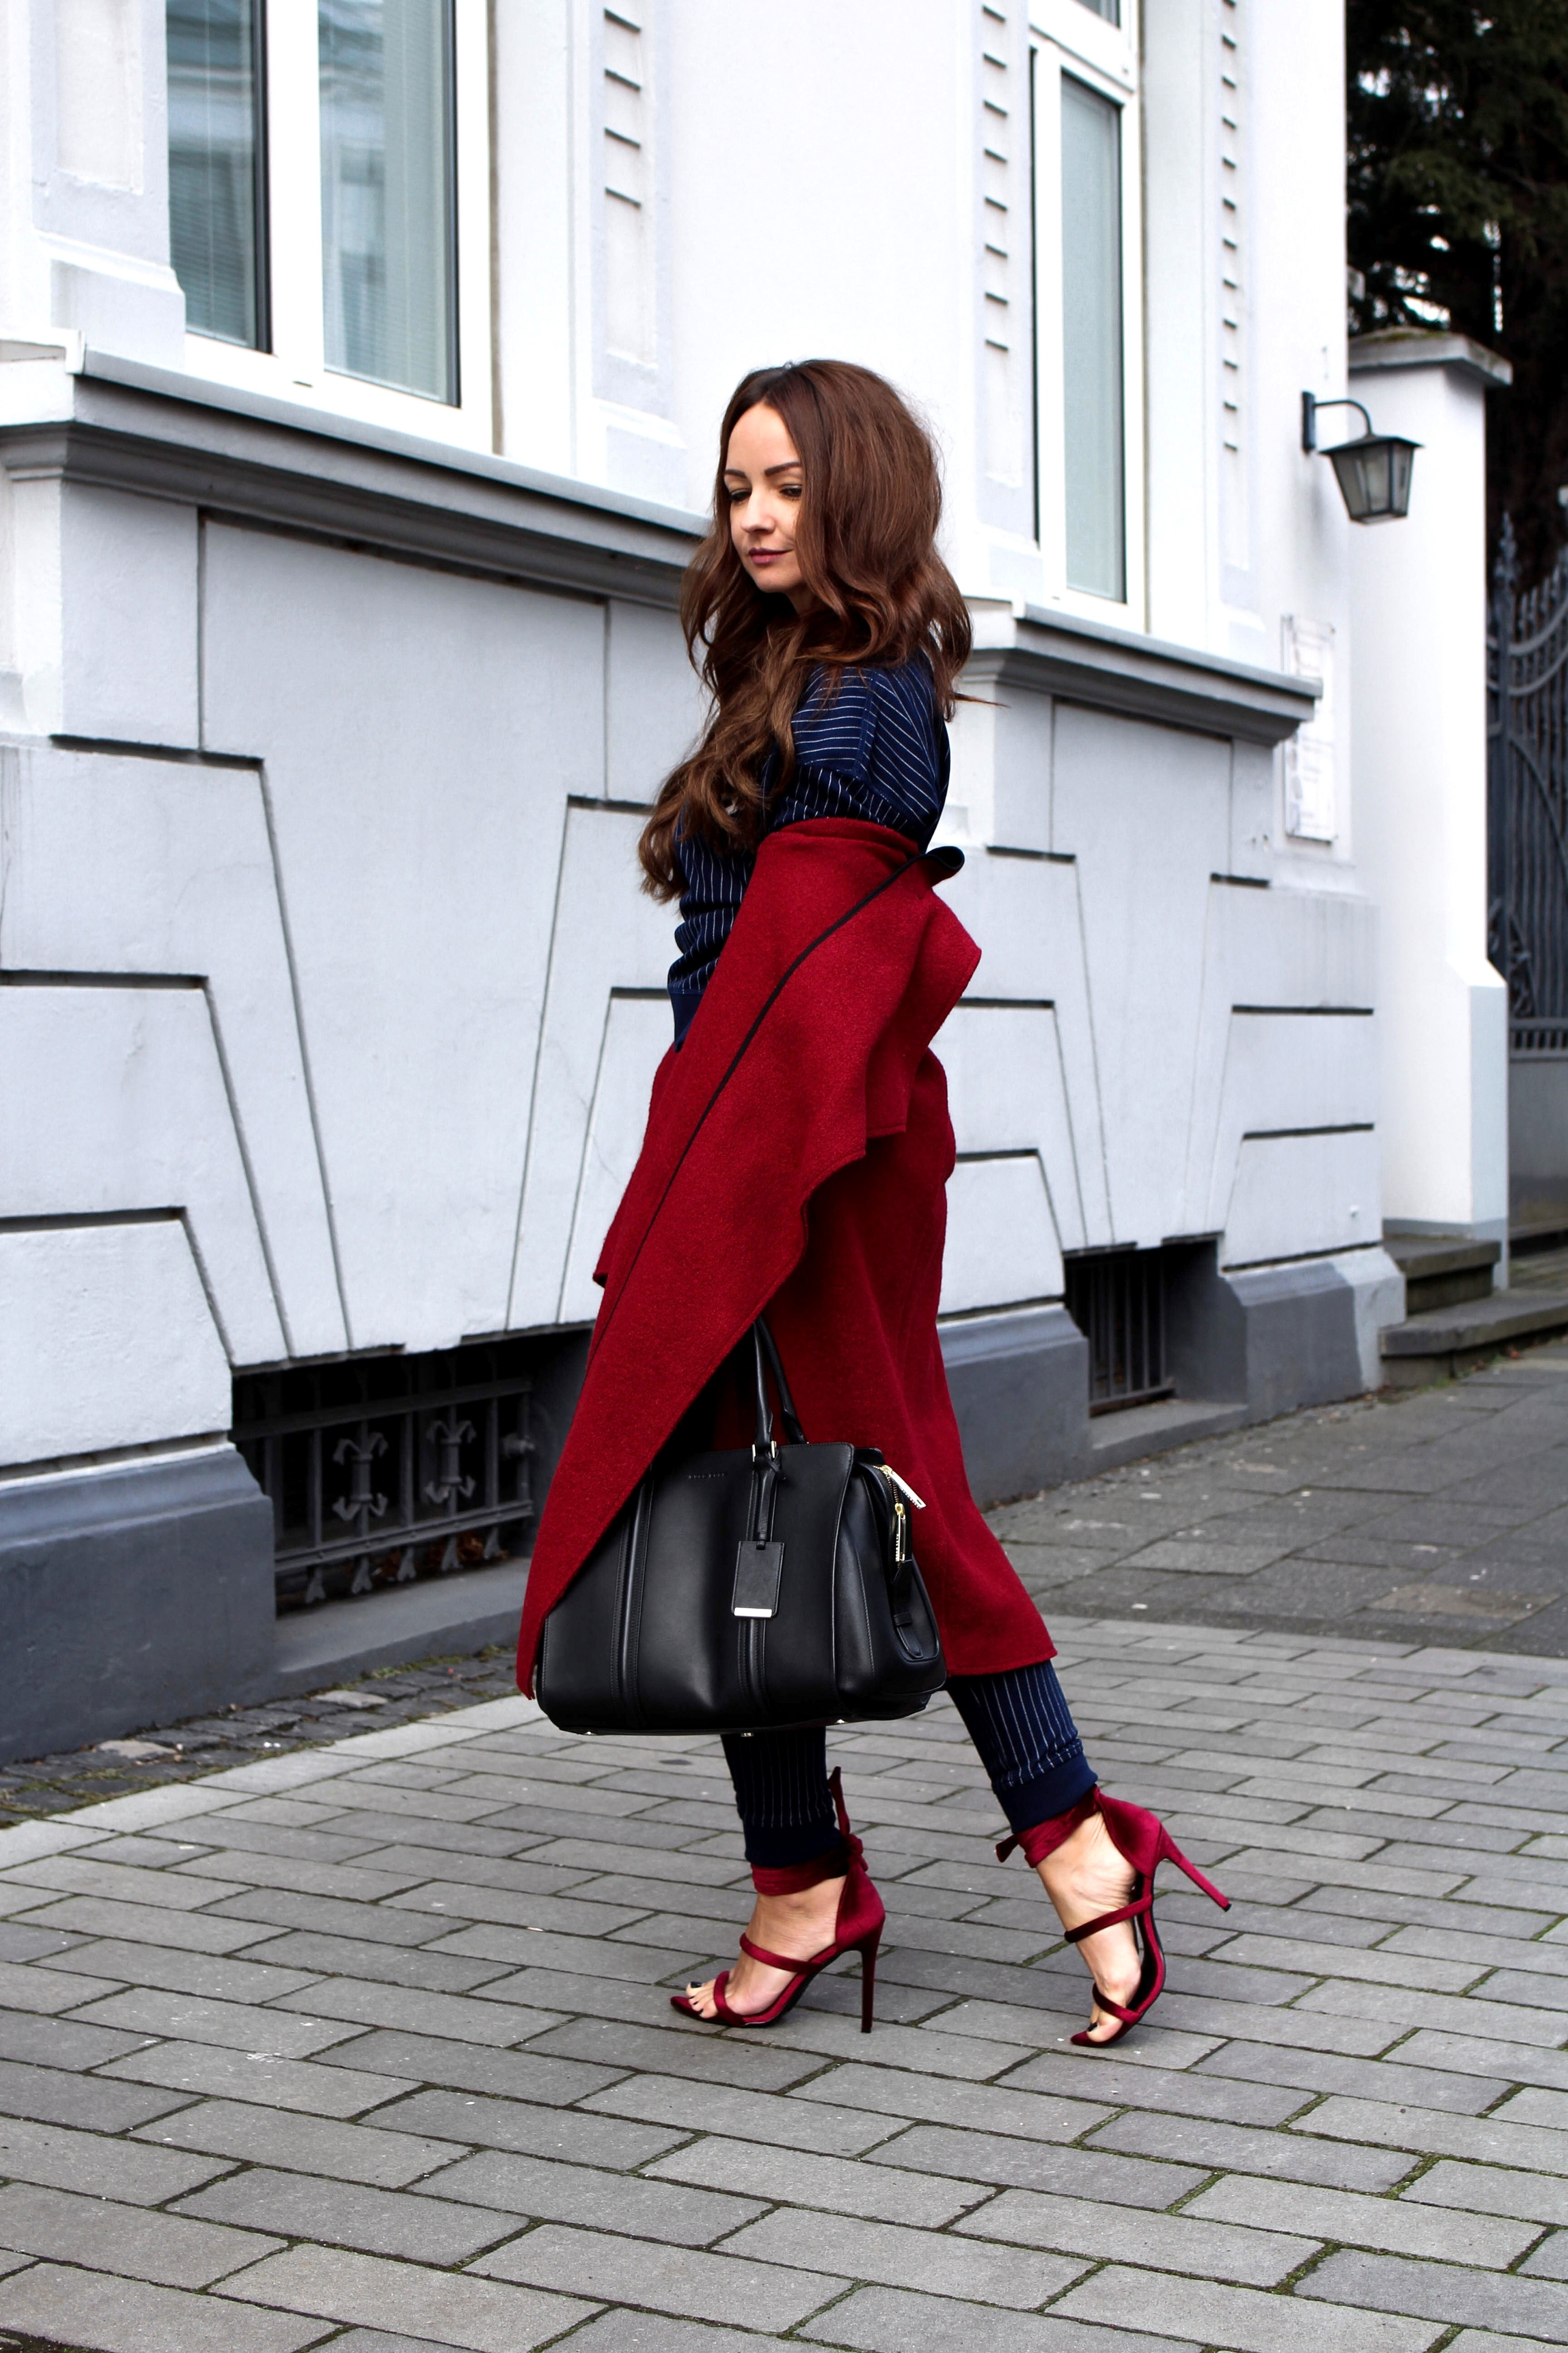 Fashioncircuz by Jenny tommy-hilfiger-blogger-look-iv OUTFIT | HILFIGER JOGGINGHOSE & STATEMENT PULLI MEETS HIGH HEELS